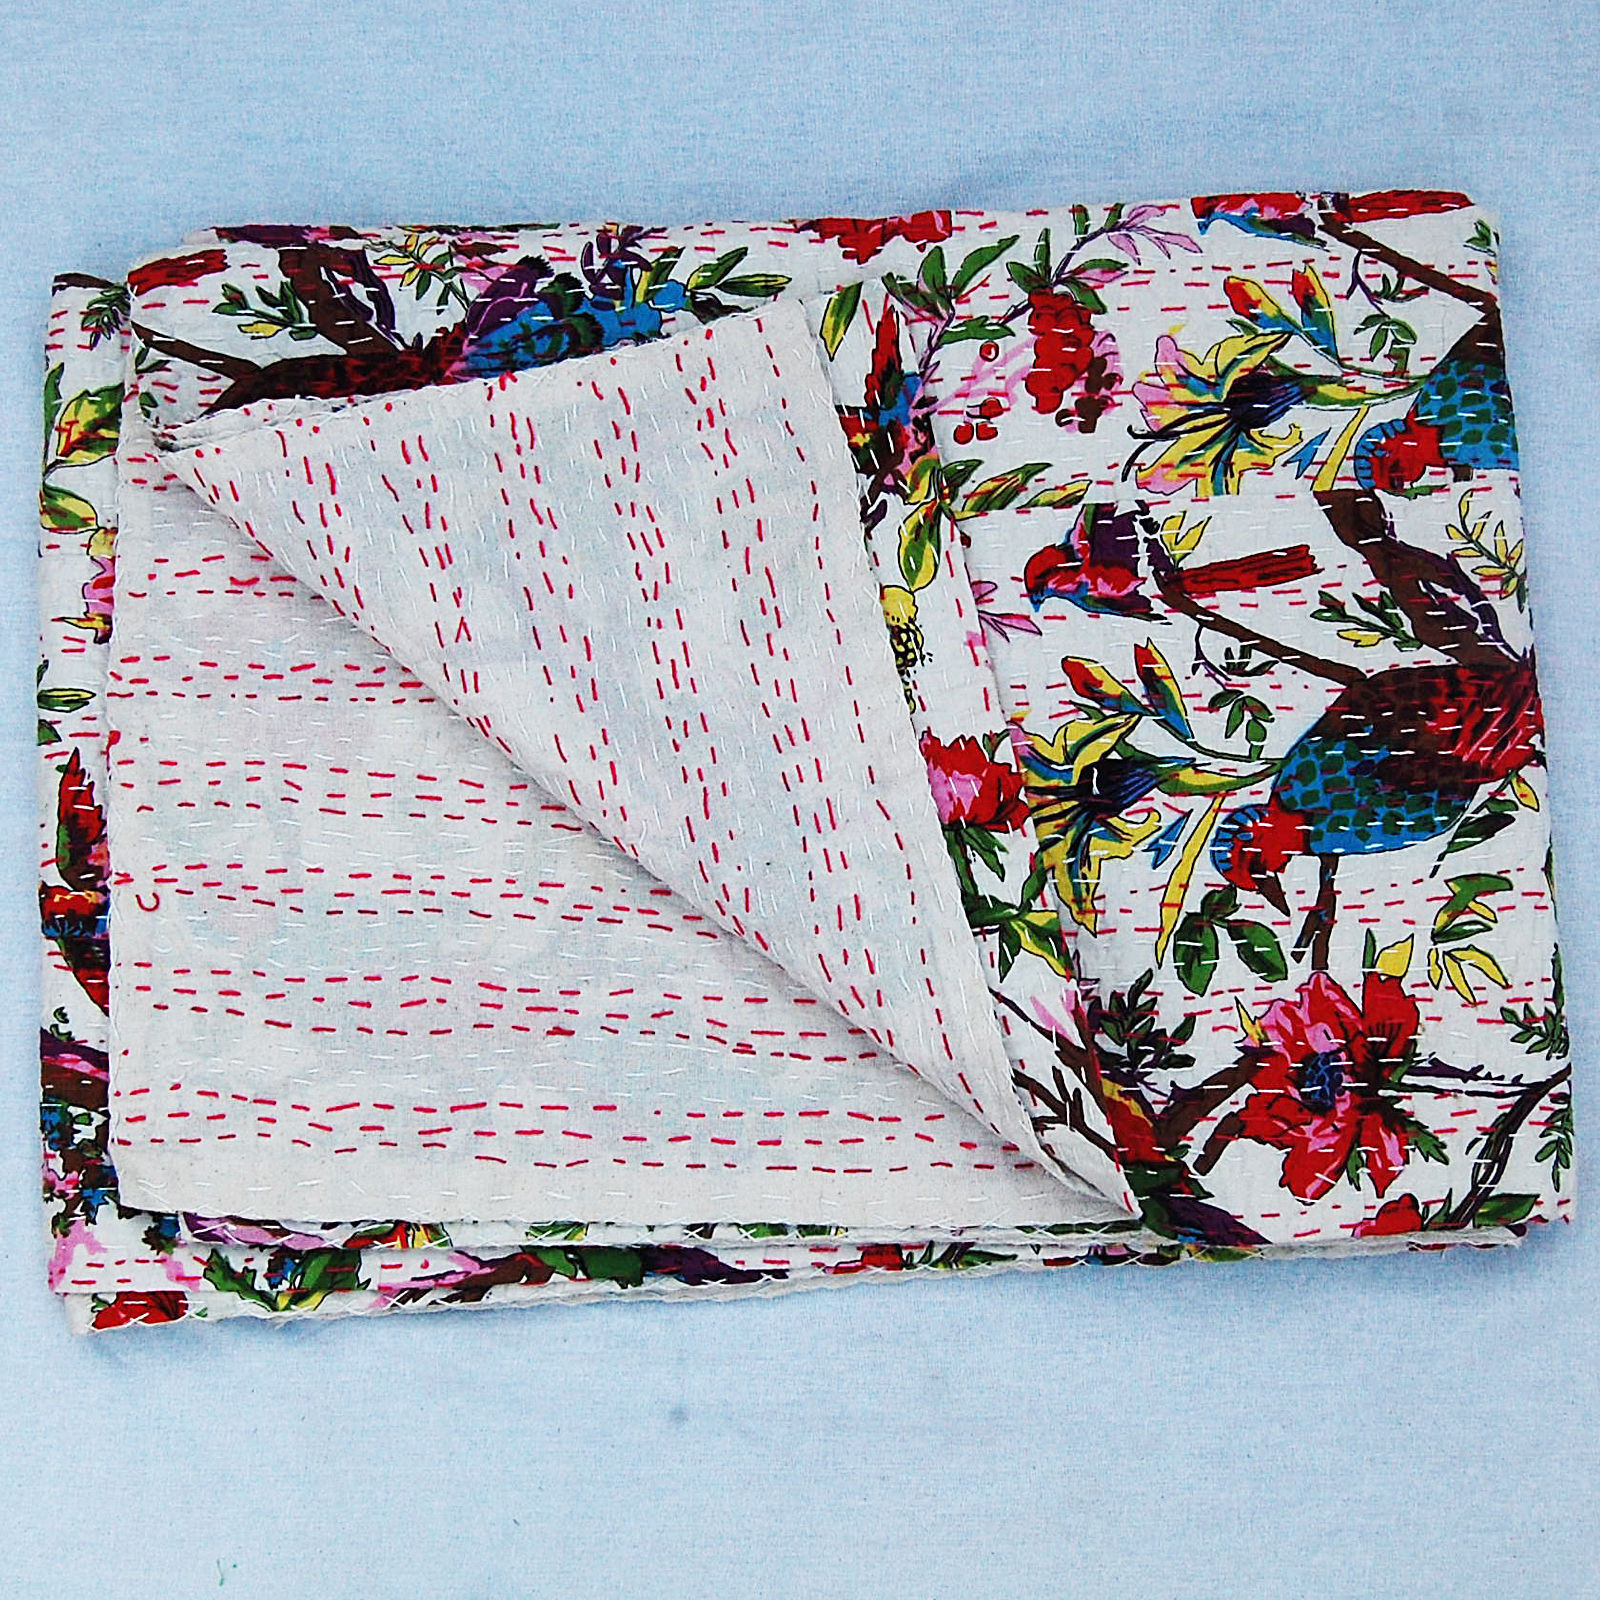 Indian Bird Print Vintage Kantha Quilt Embroidery Large Handmade Cotton Blanket